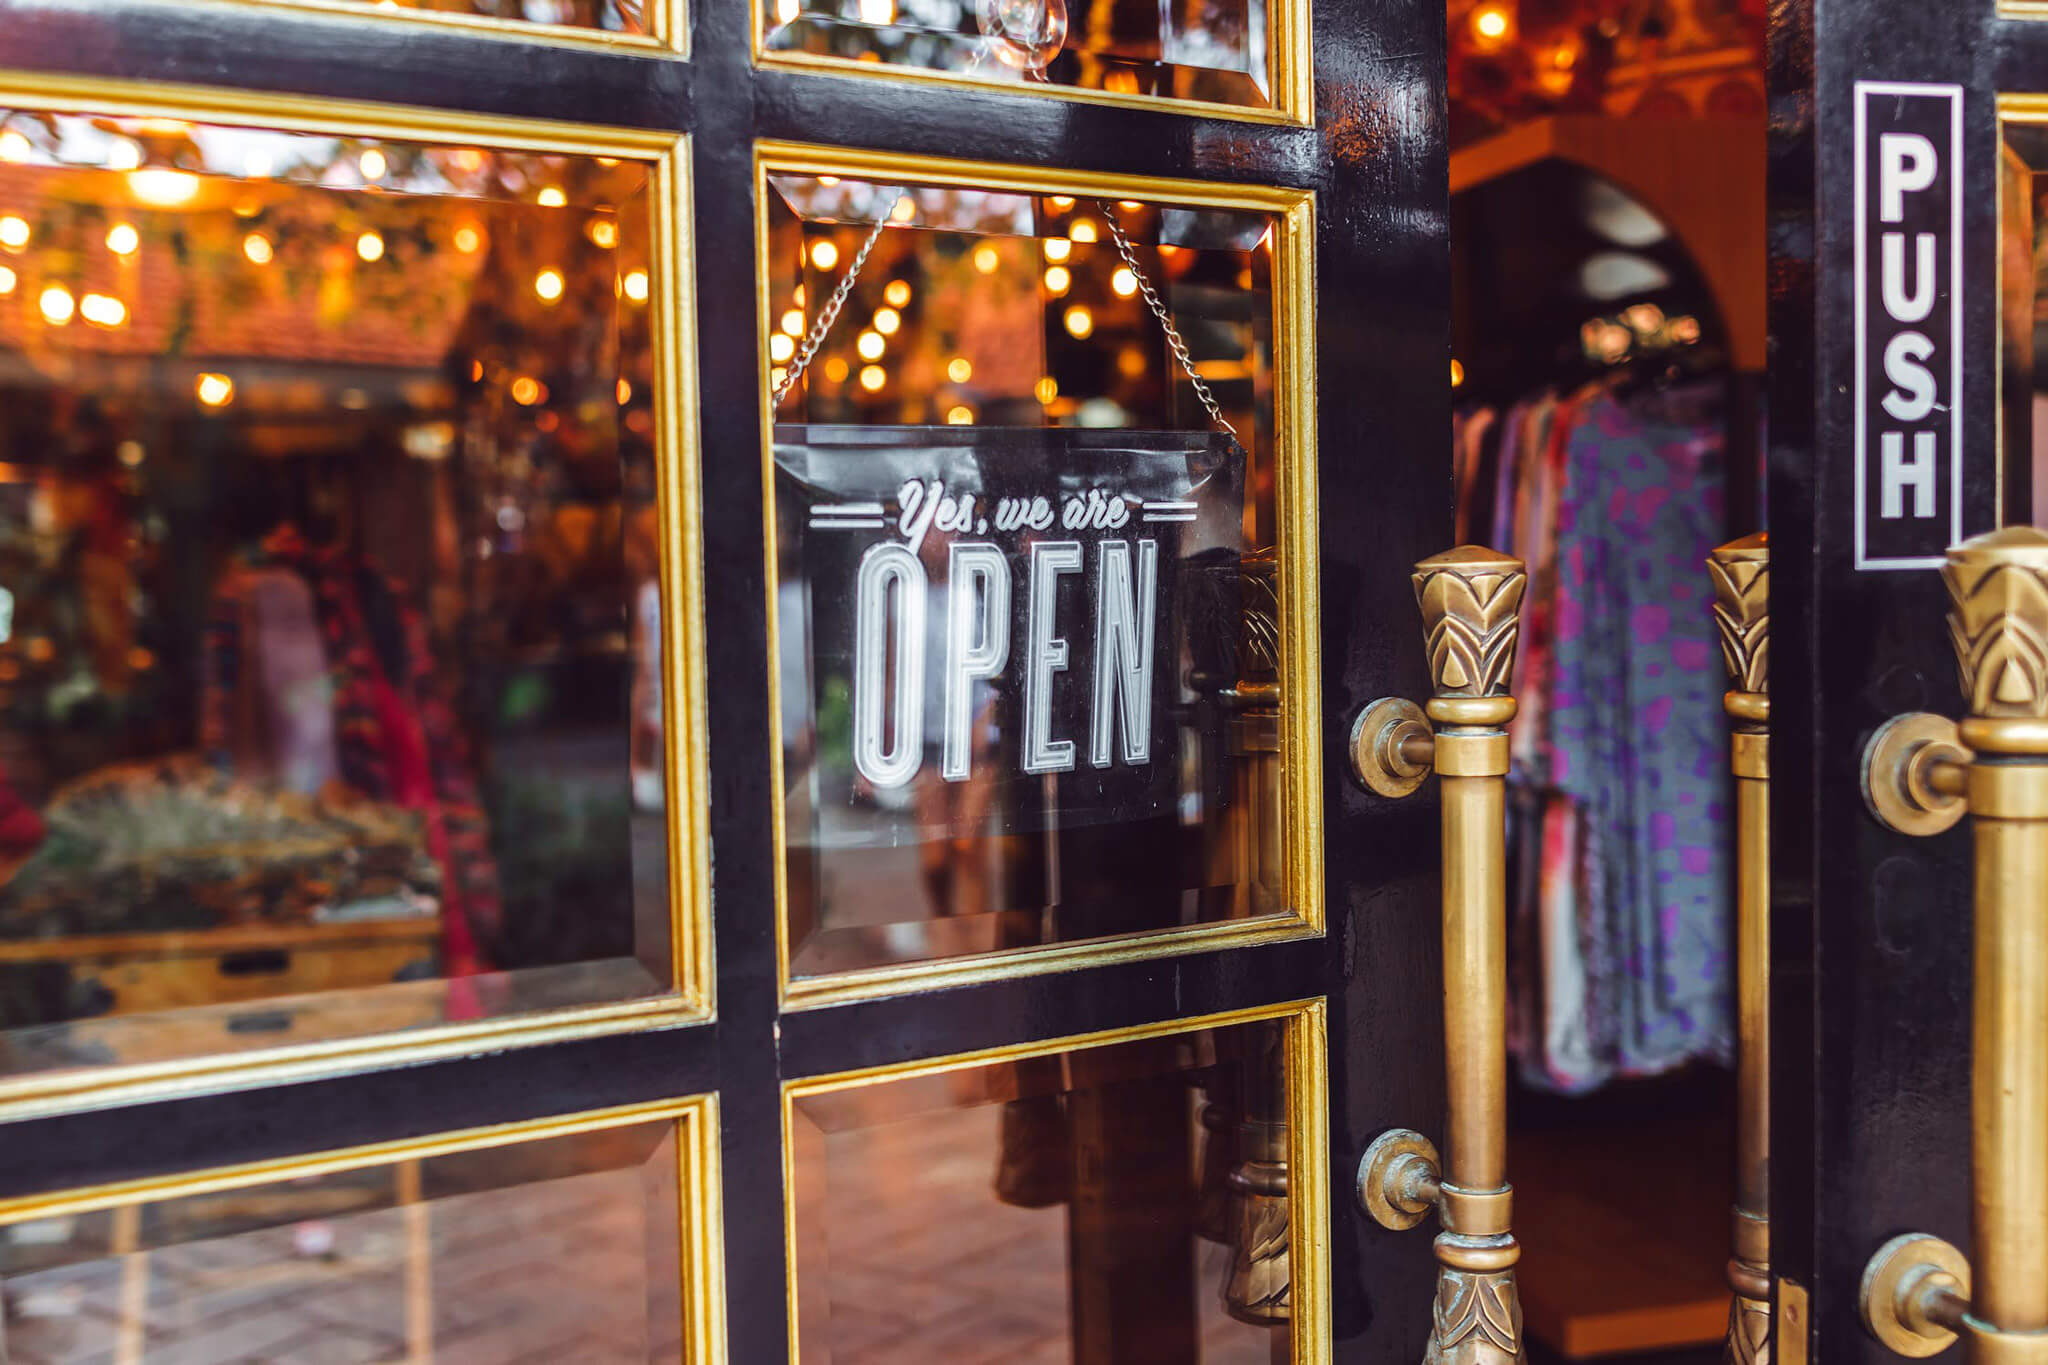 Shop with open sign